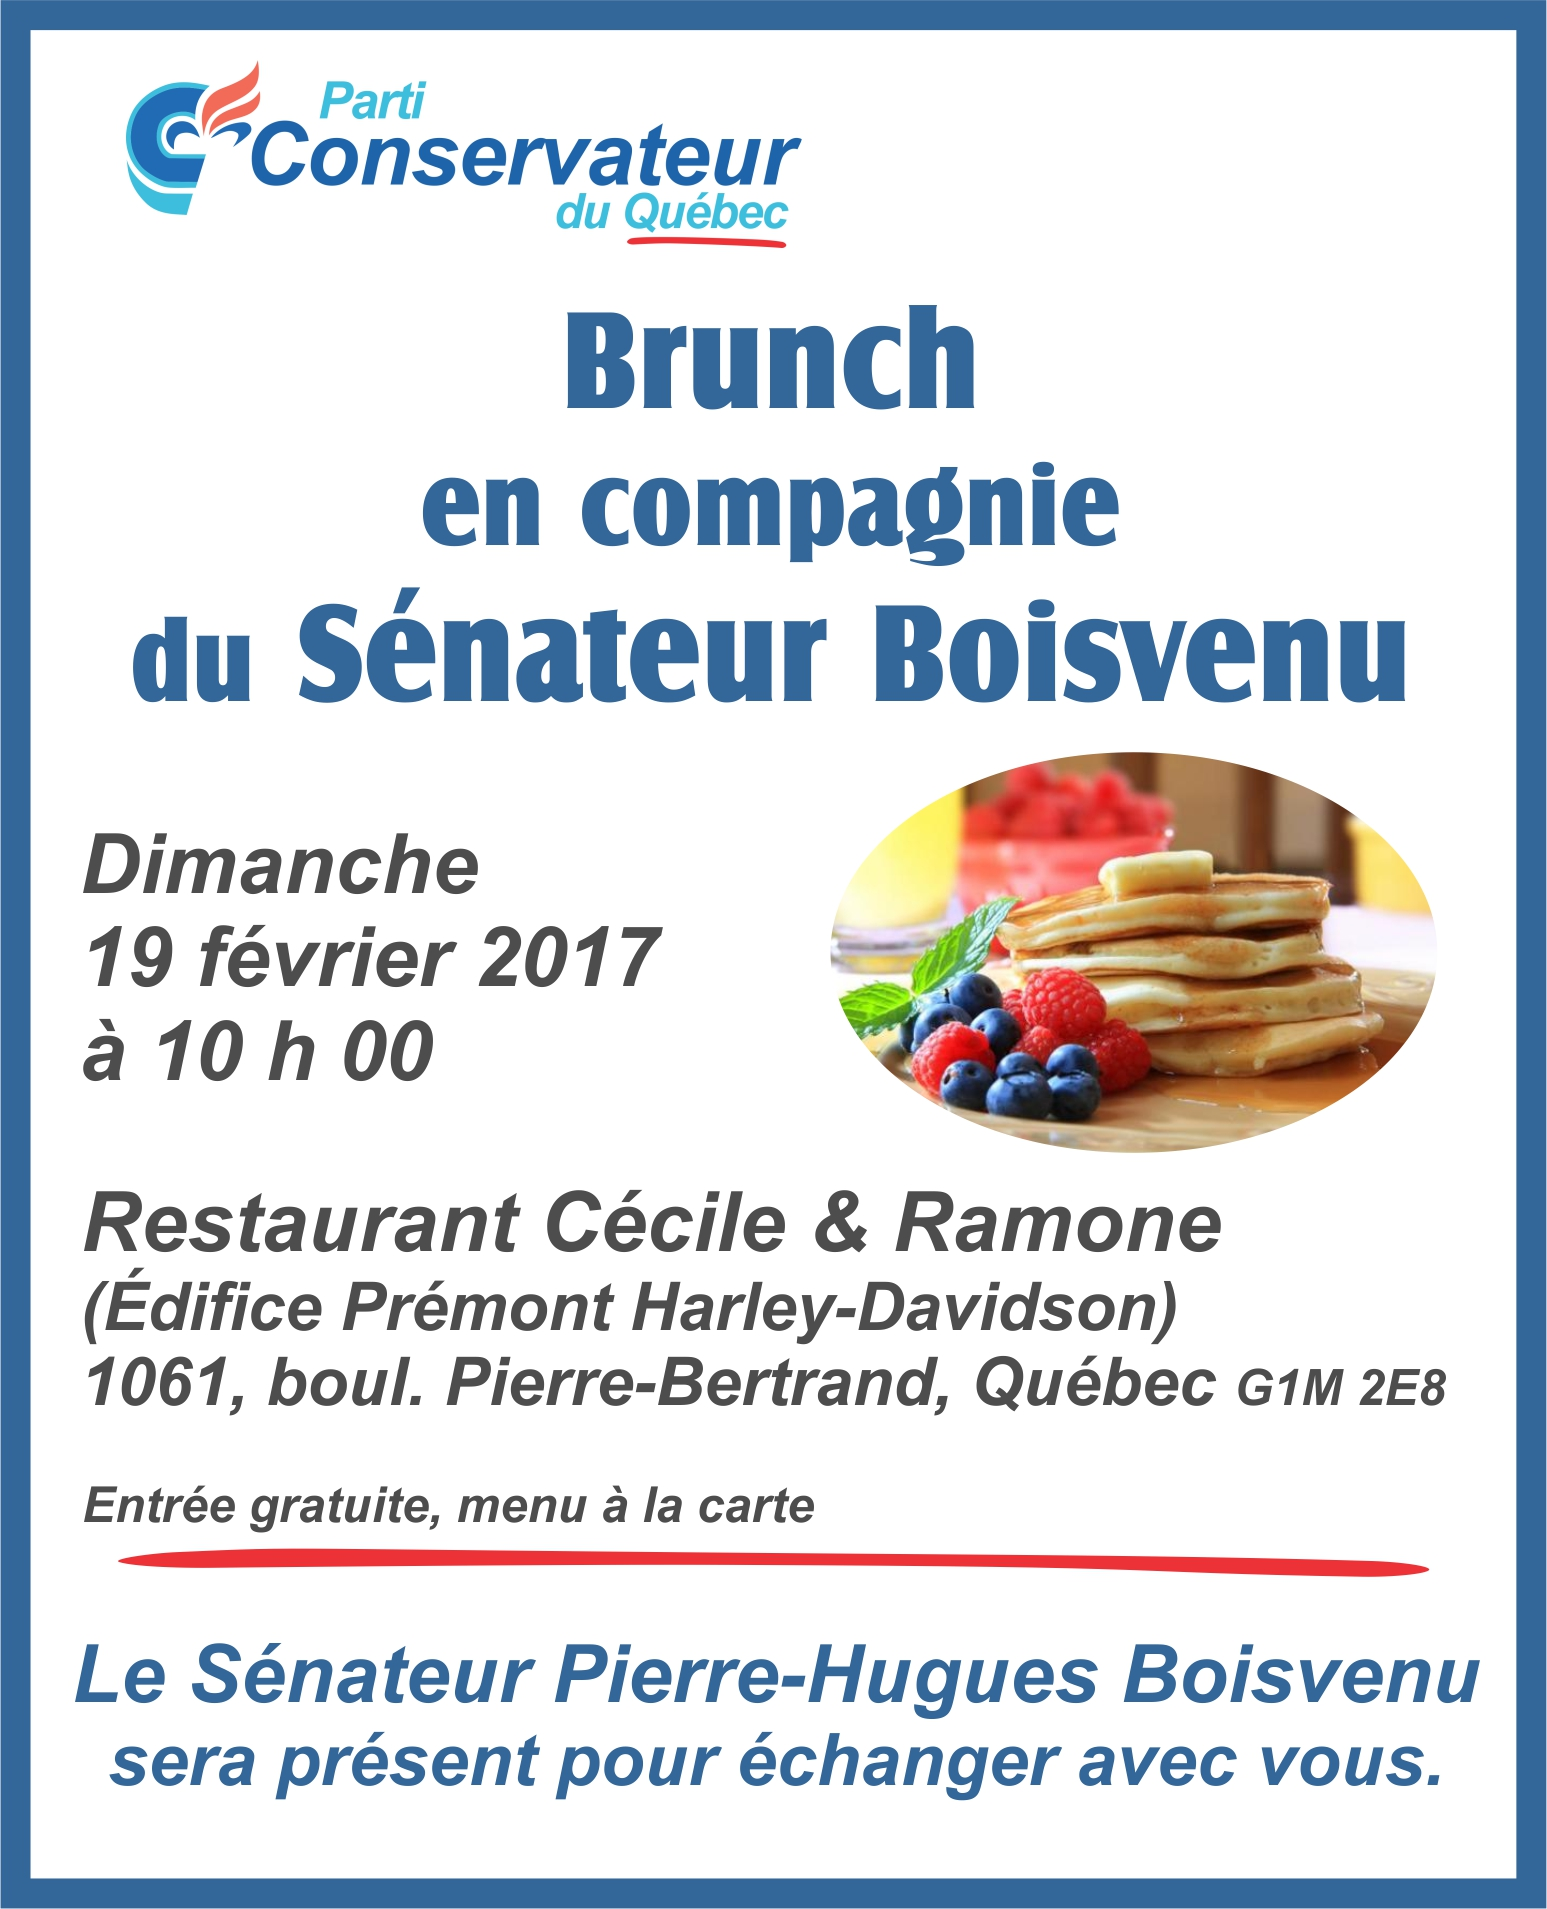 20170219_Qc_Brunch.jpg